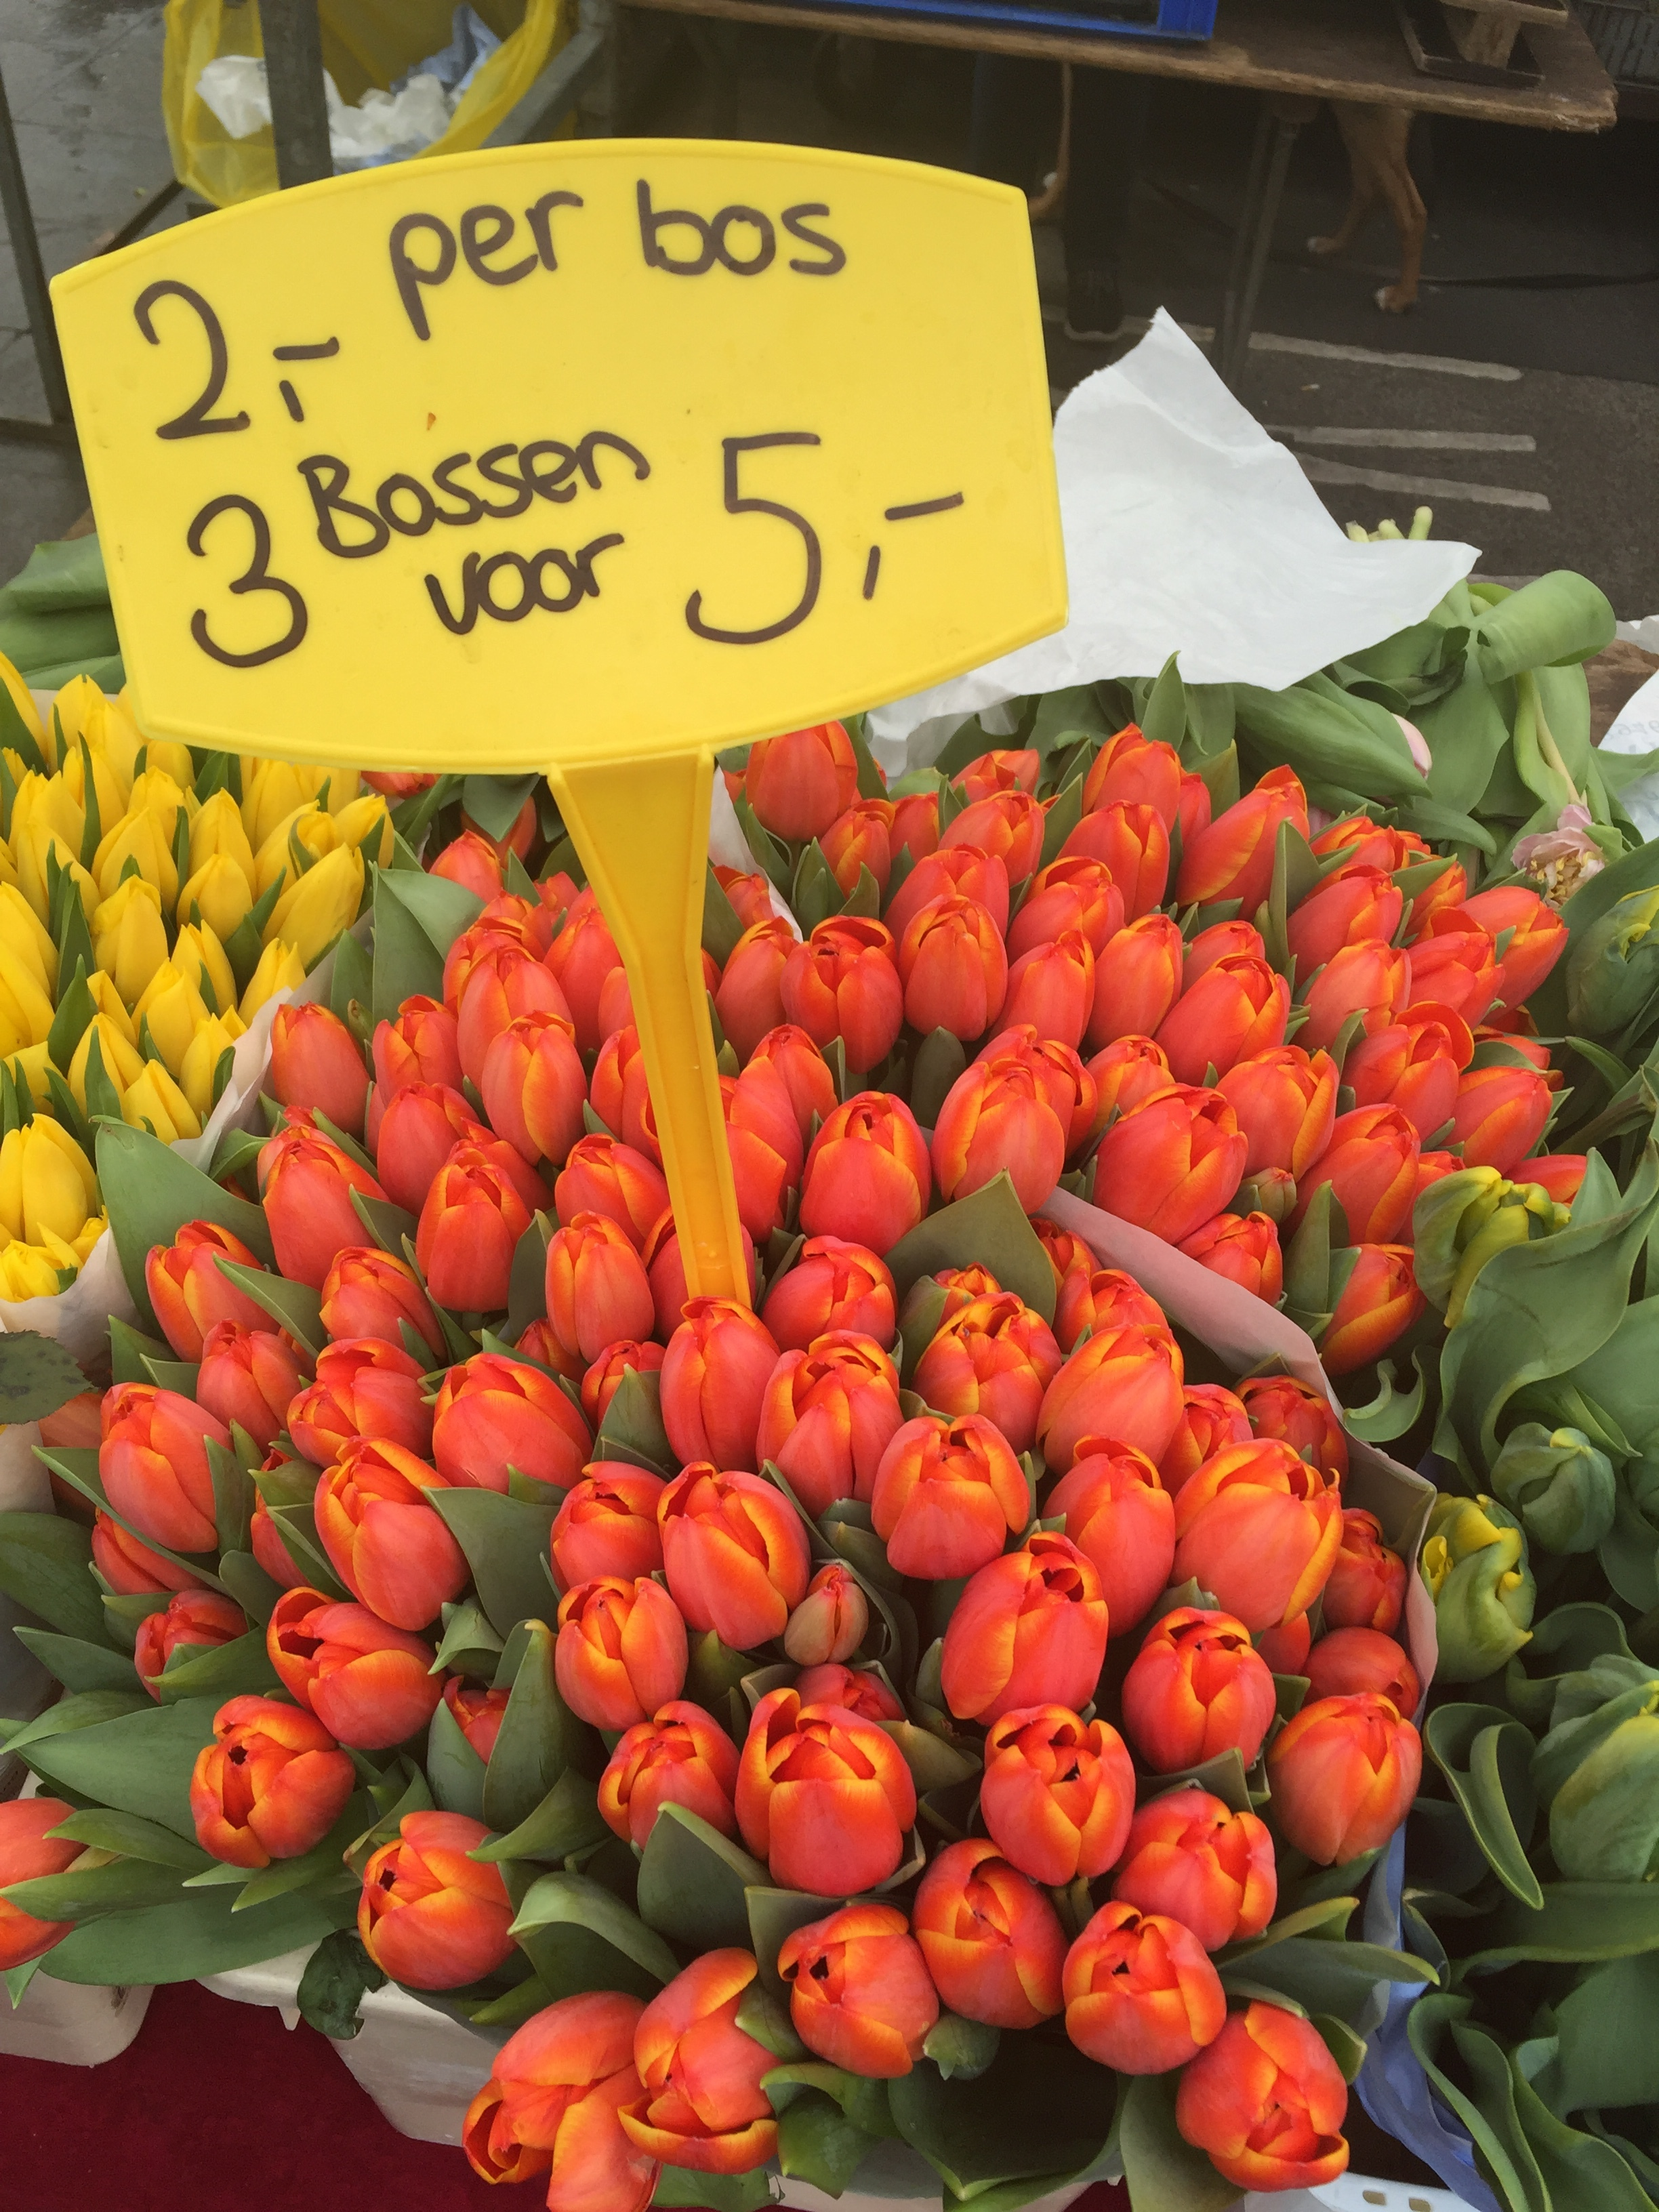 Tulips - 3 bunches for sale in Amsterdam's Albert Cuypmarkt.